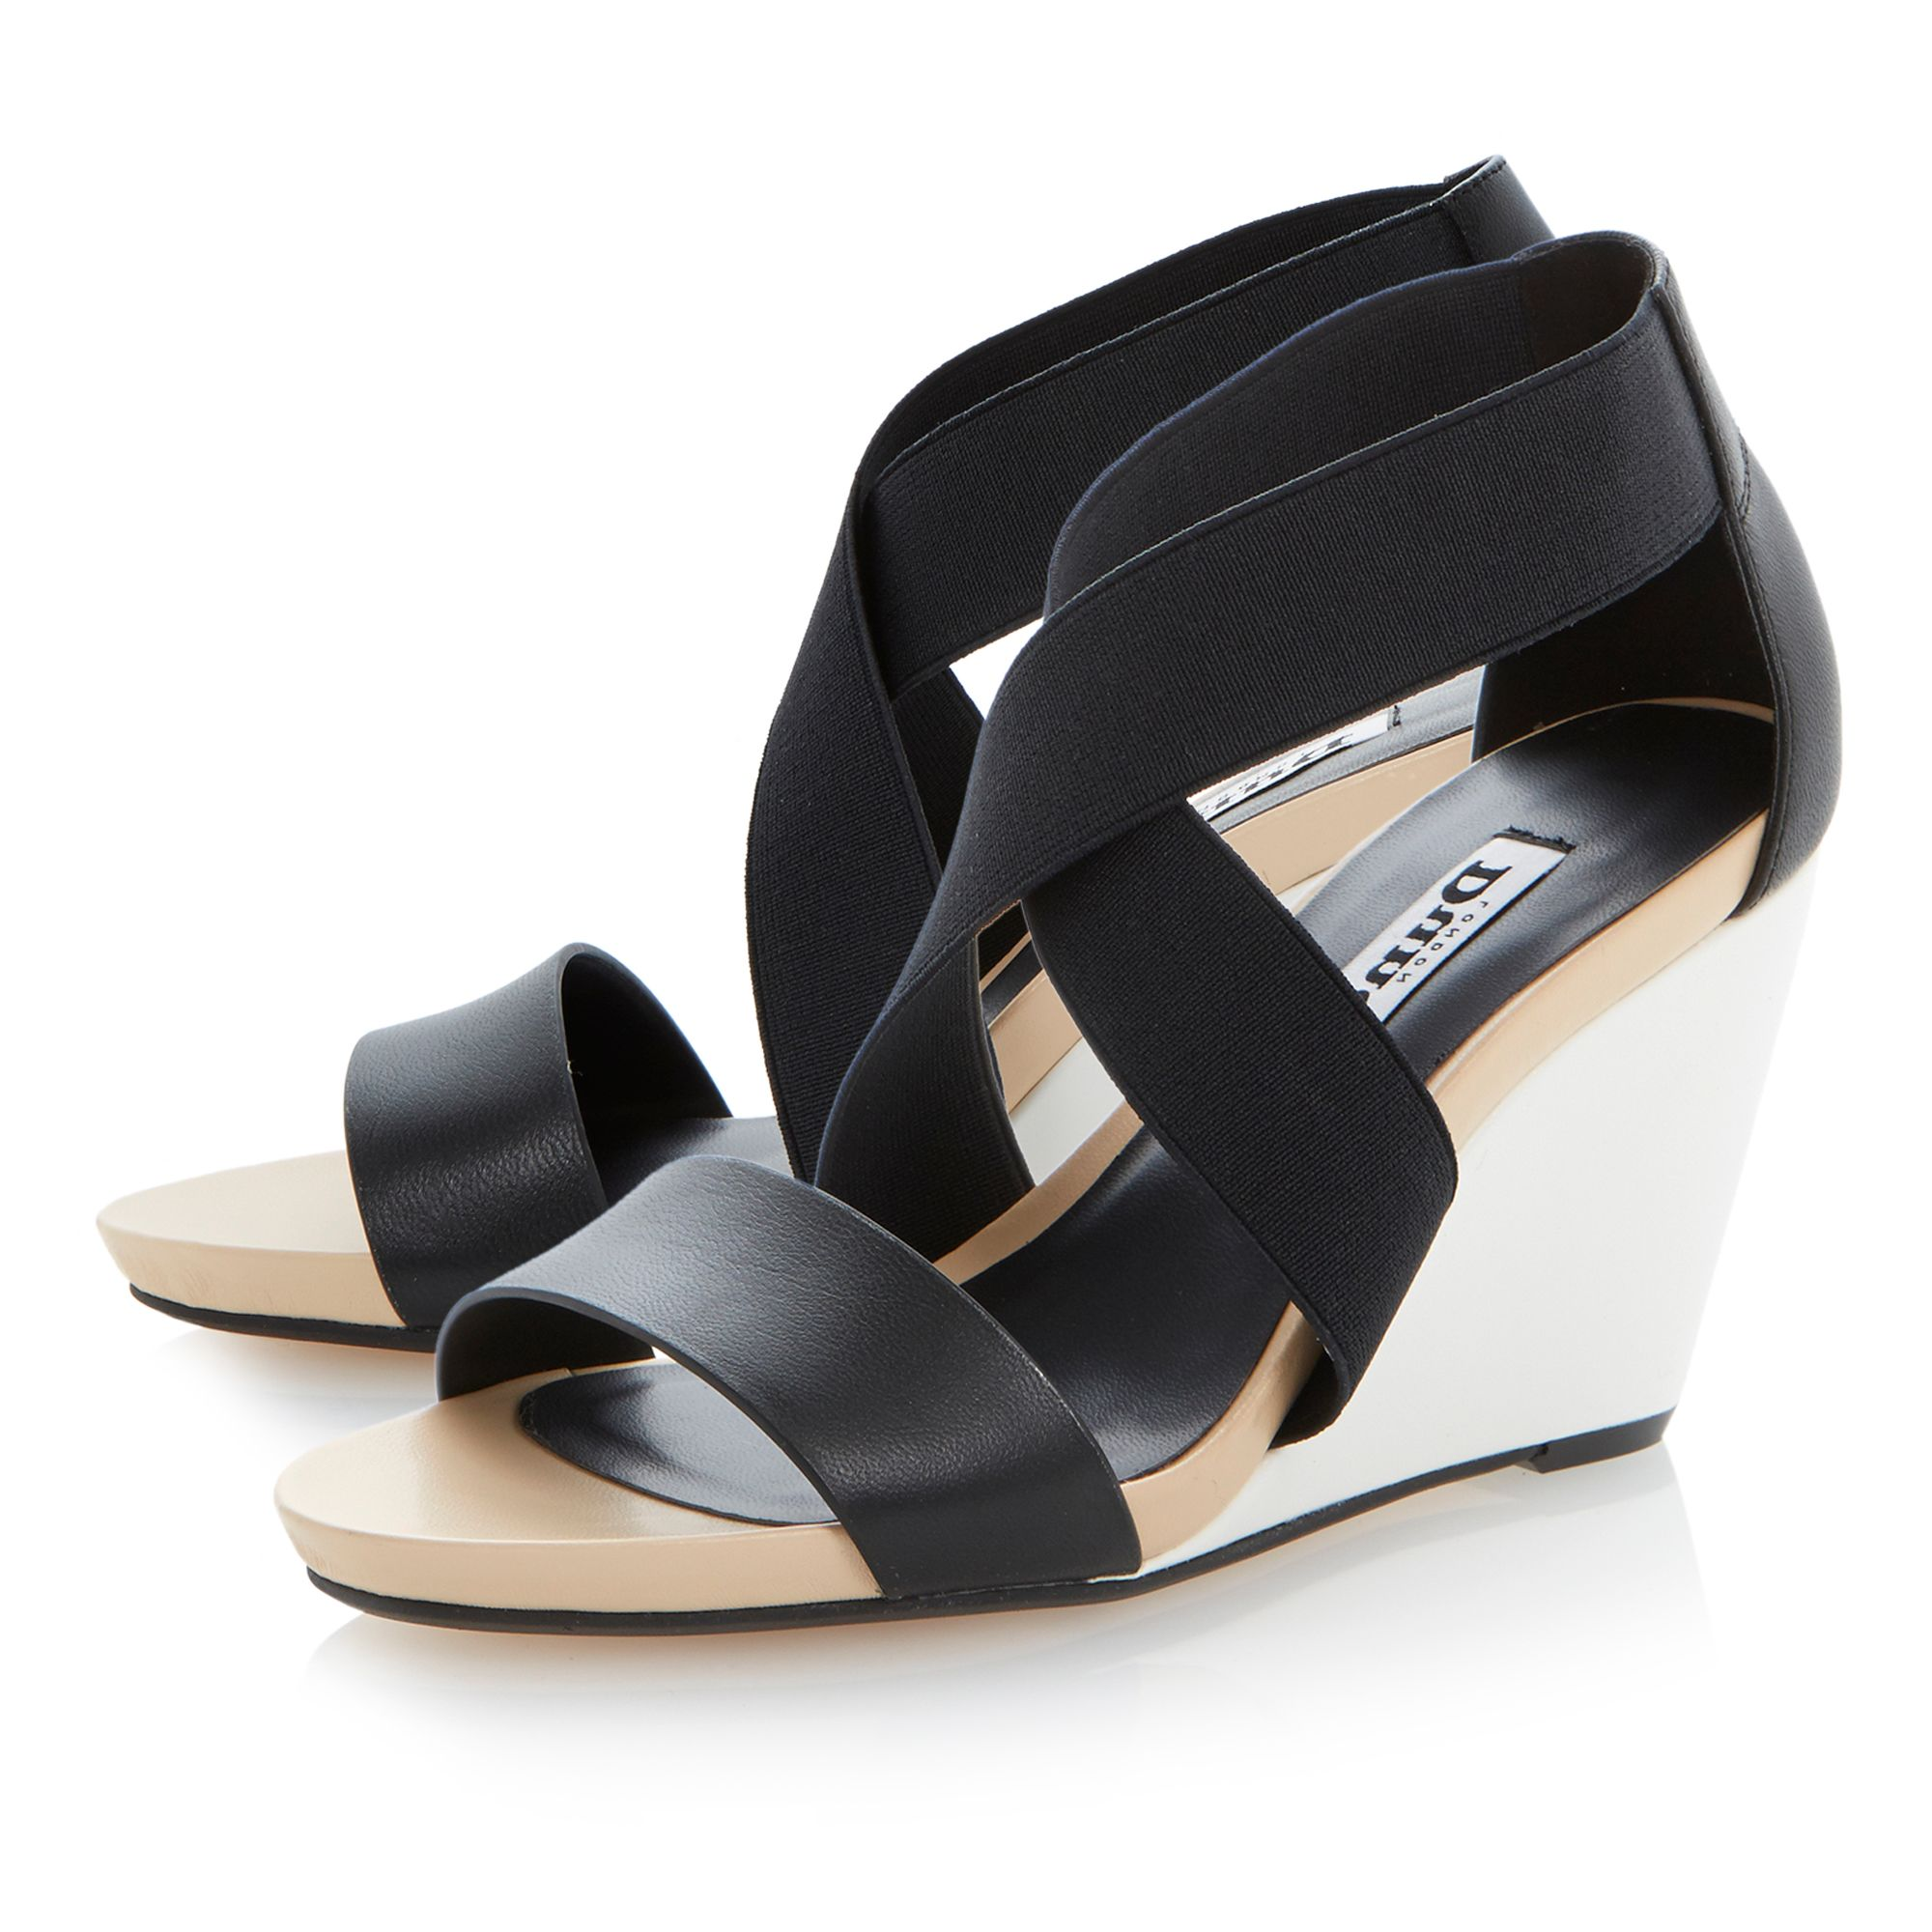 Georgey colour block wedge sandals